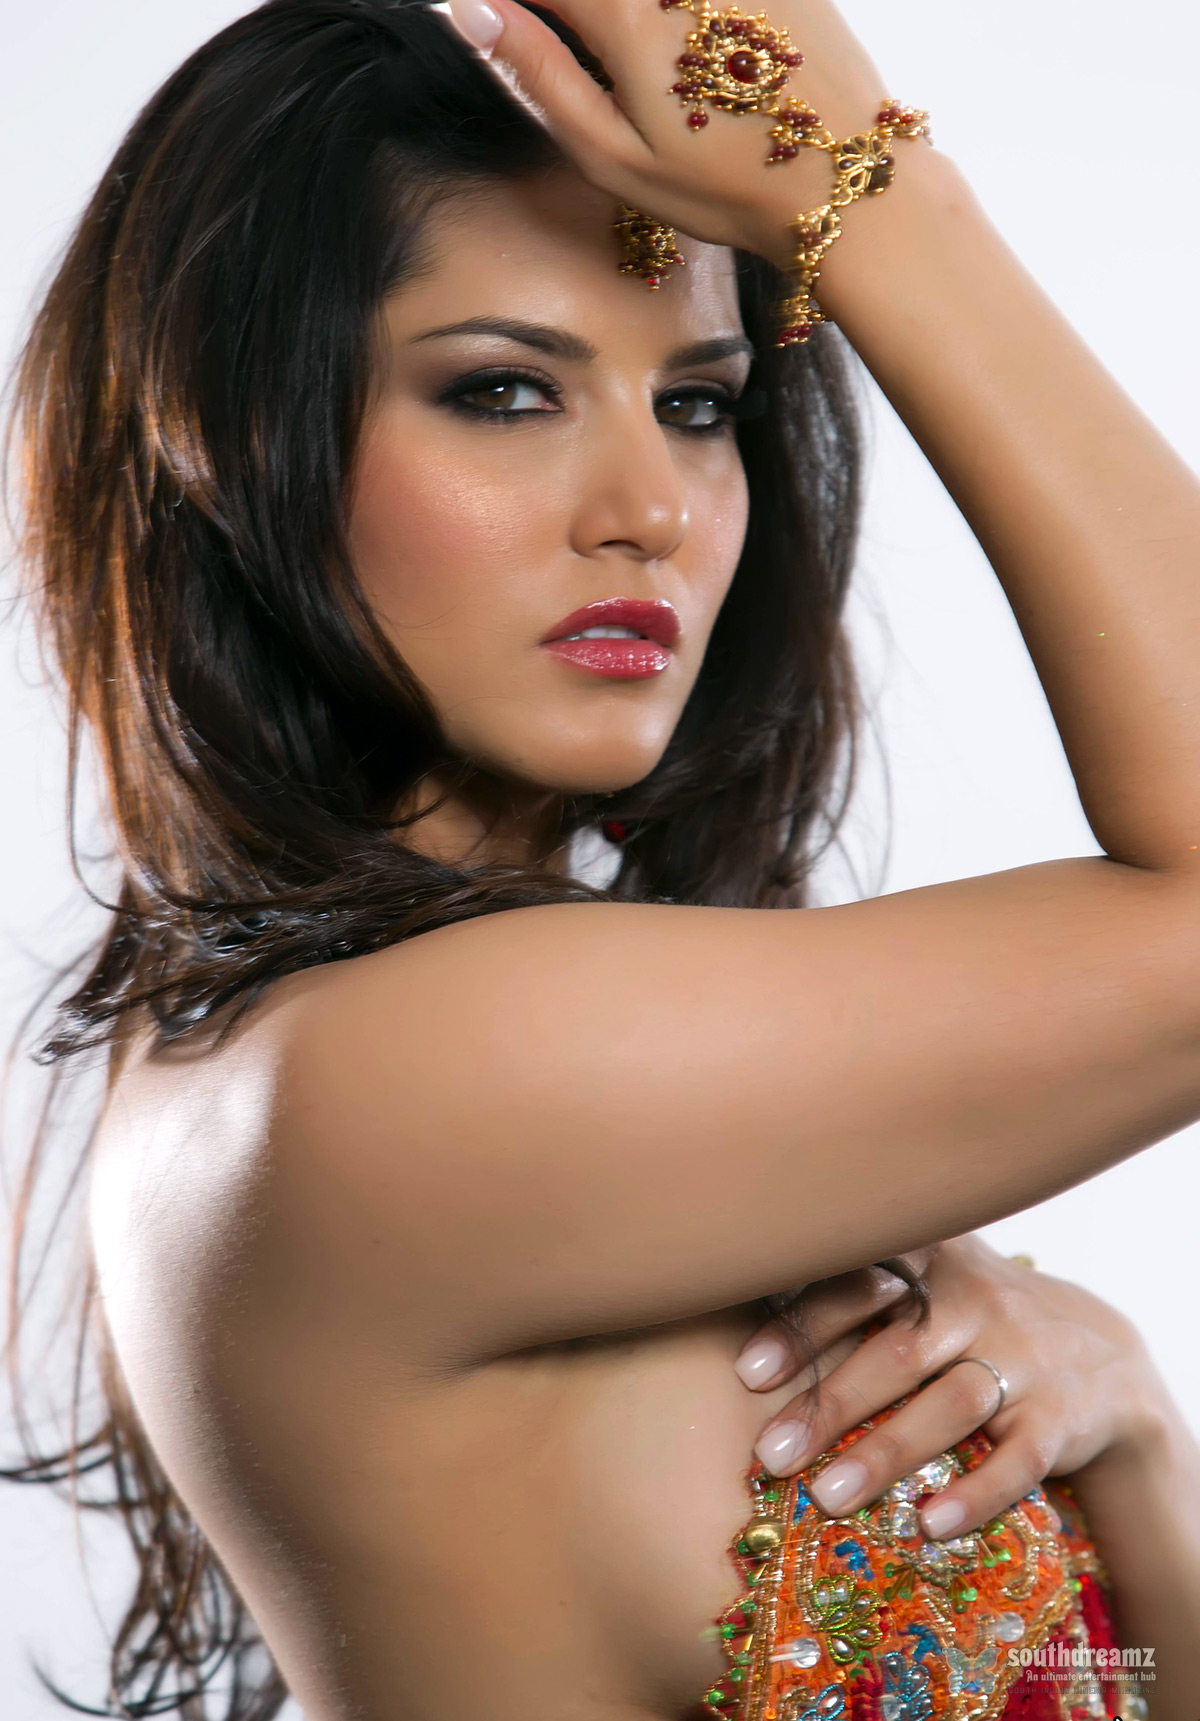 Sunny leone xxx video hd com-5451